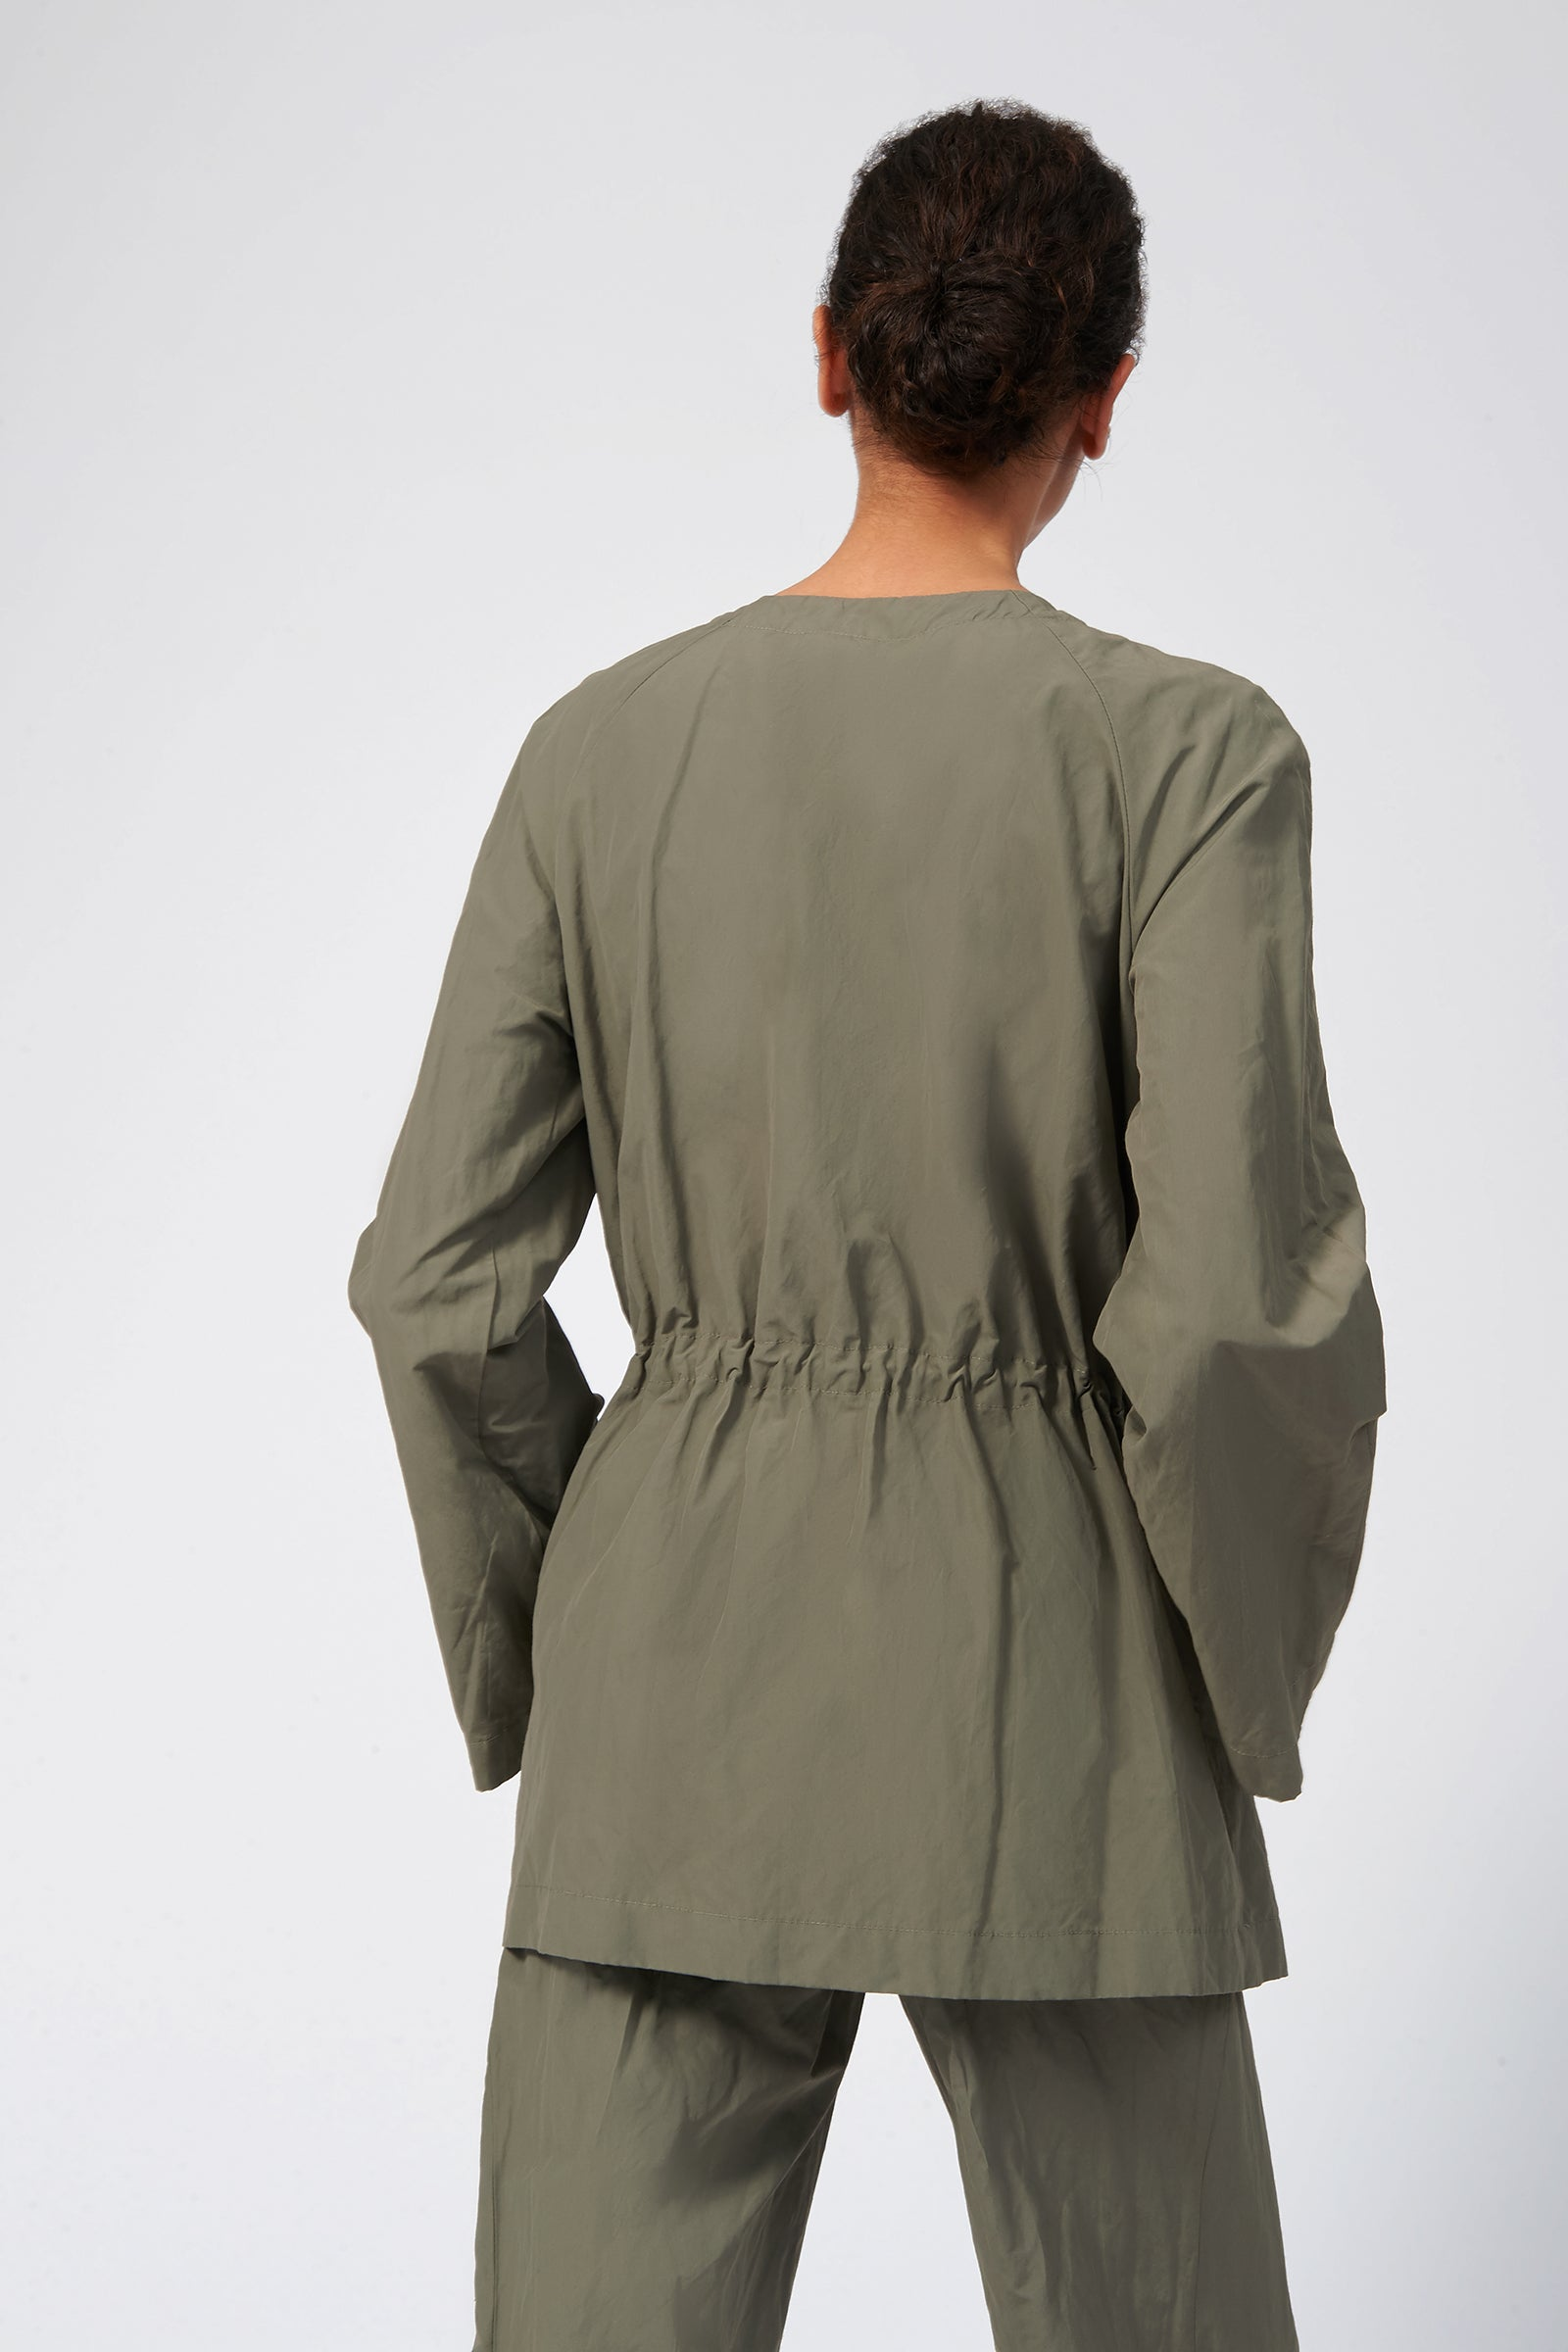 Kal Rieman Cotton Nylon Cinch Jacket in Olive on Model Side View